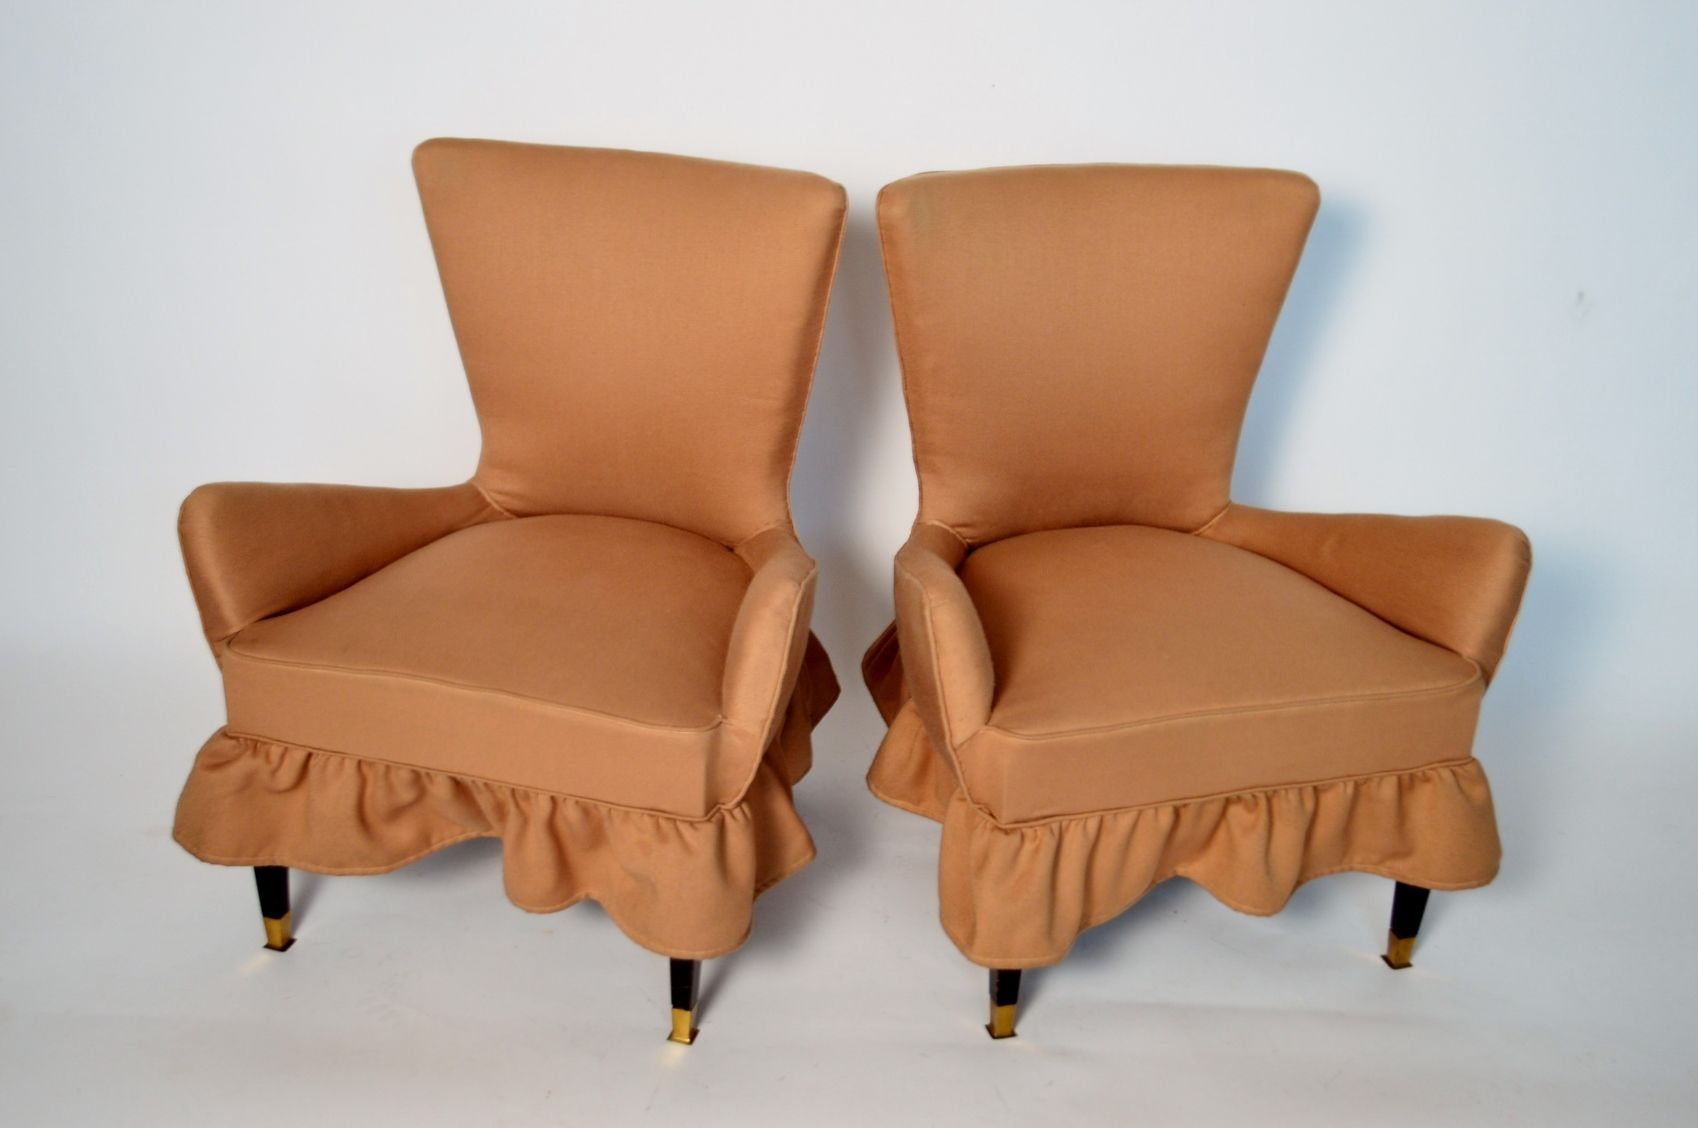 Vintage small italian armchairs 1960s set of 2 for sale for 2 armchairs for sale